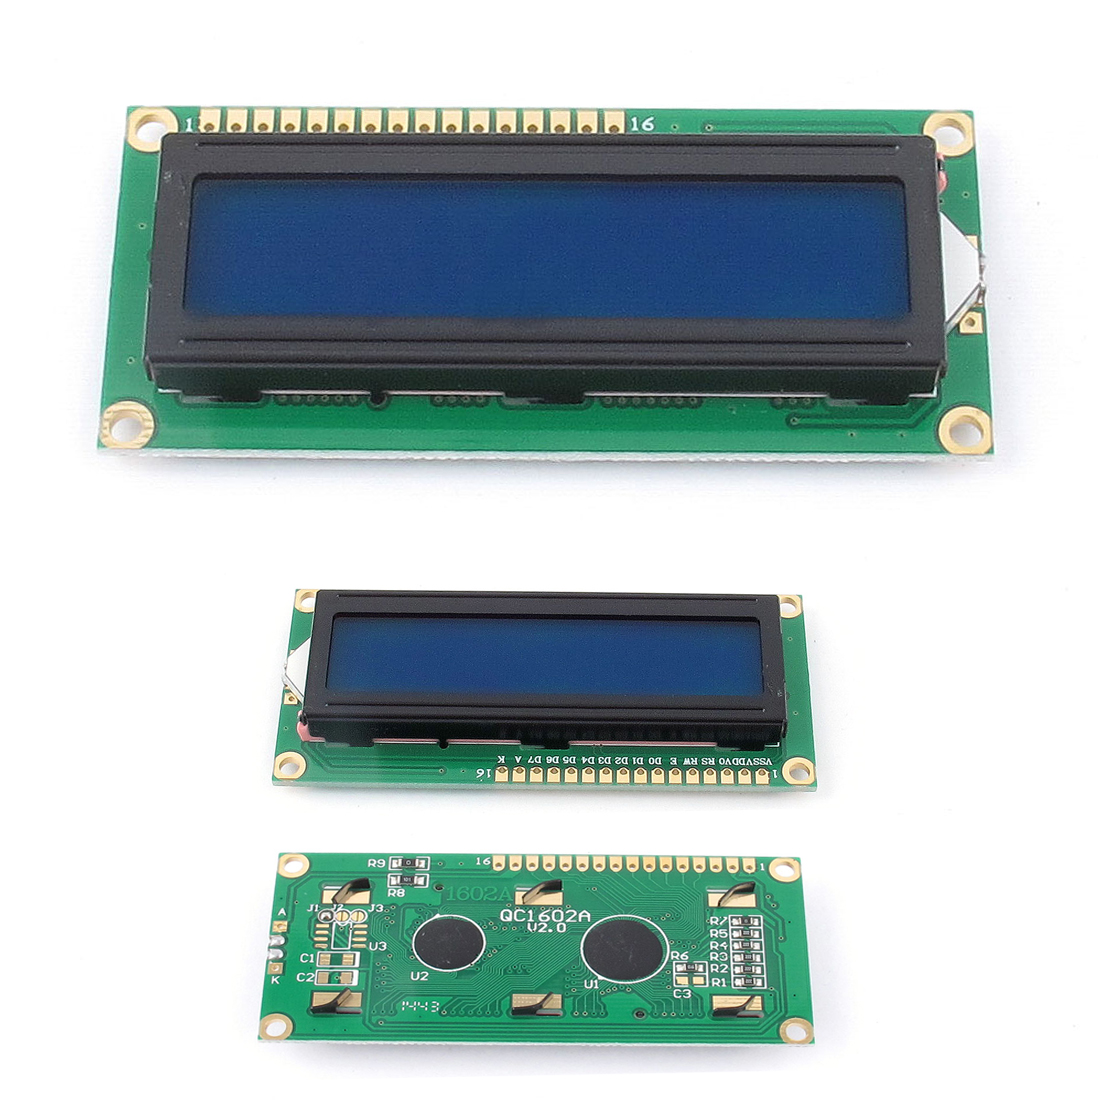 Lcd character display module lcm blue backlight